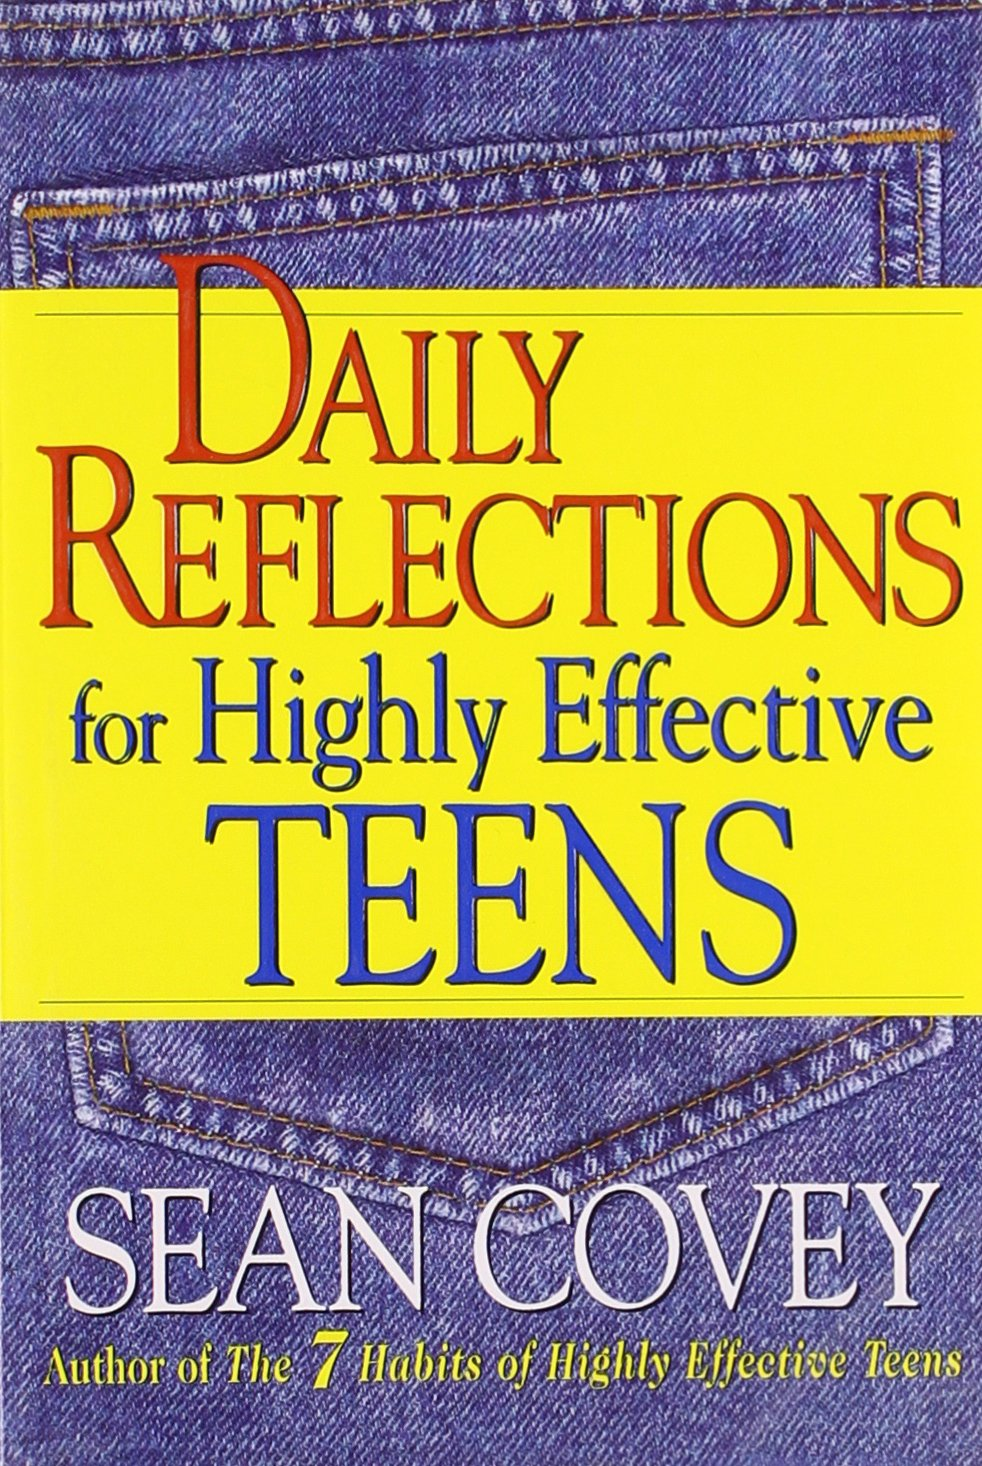 Daily Reflections For Highly Effective Teens: Sean Covey ...